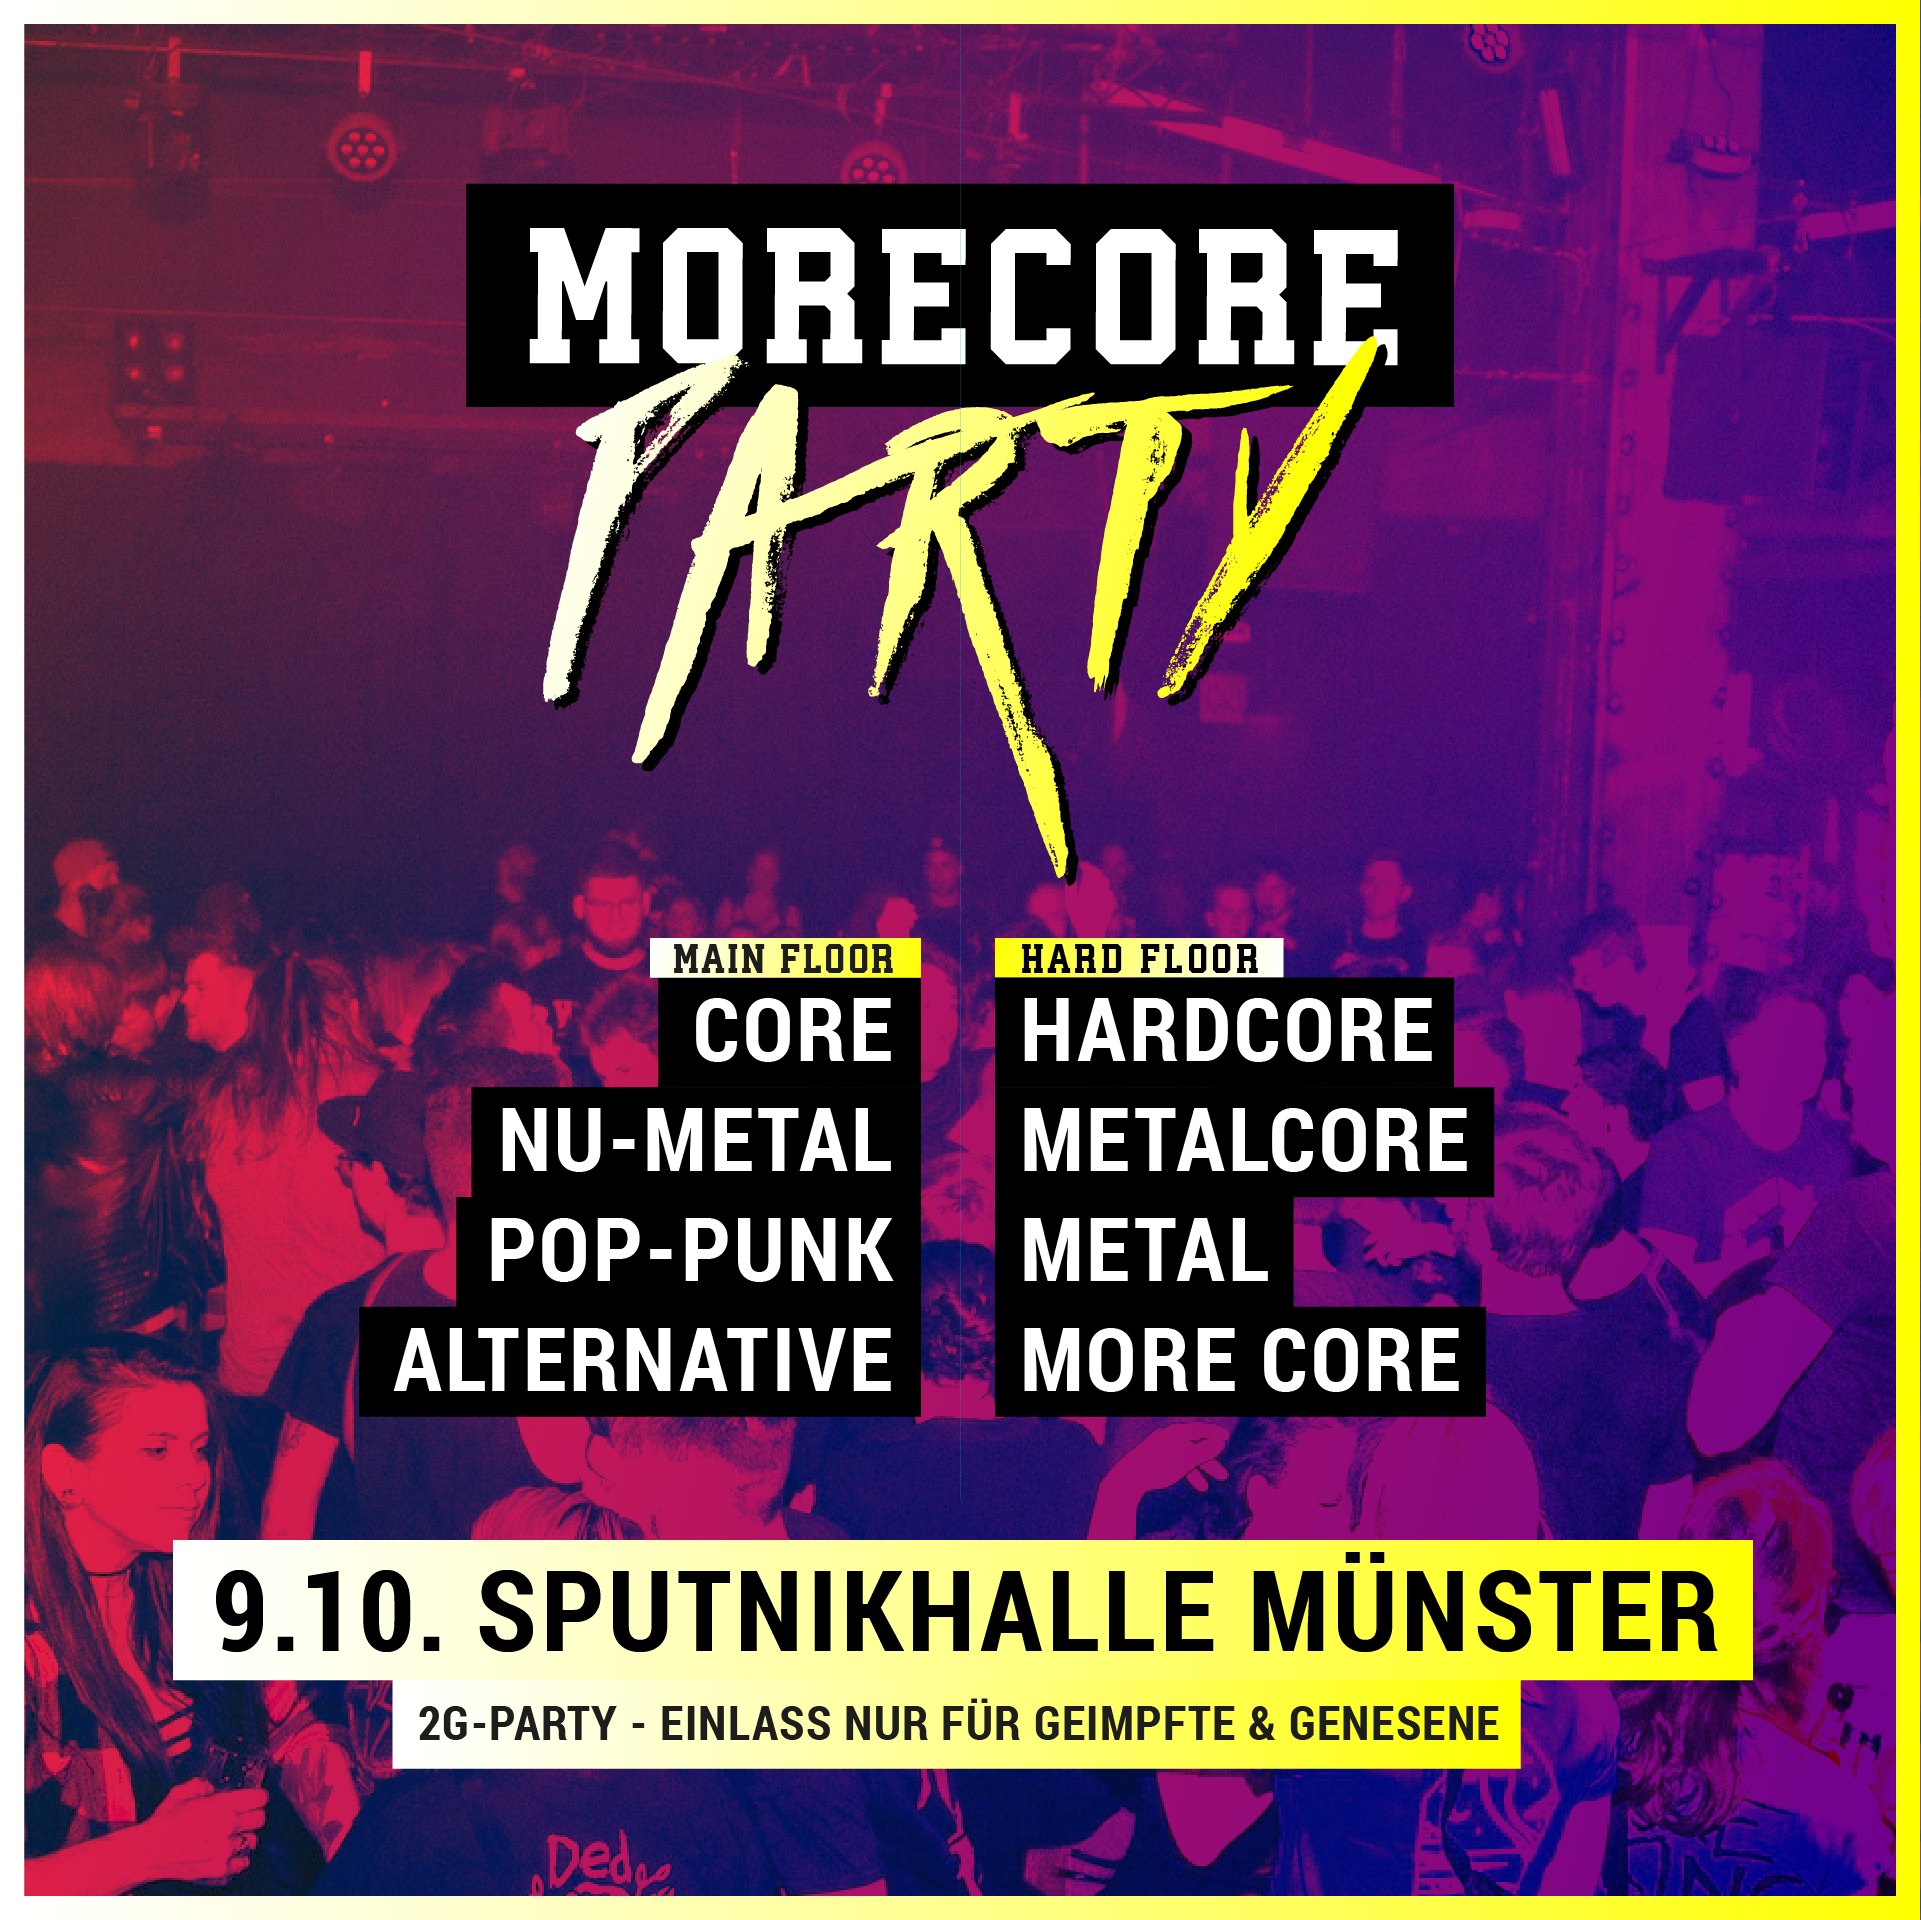 MoreCore Party Münster